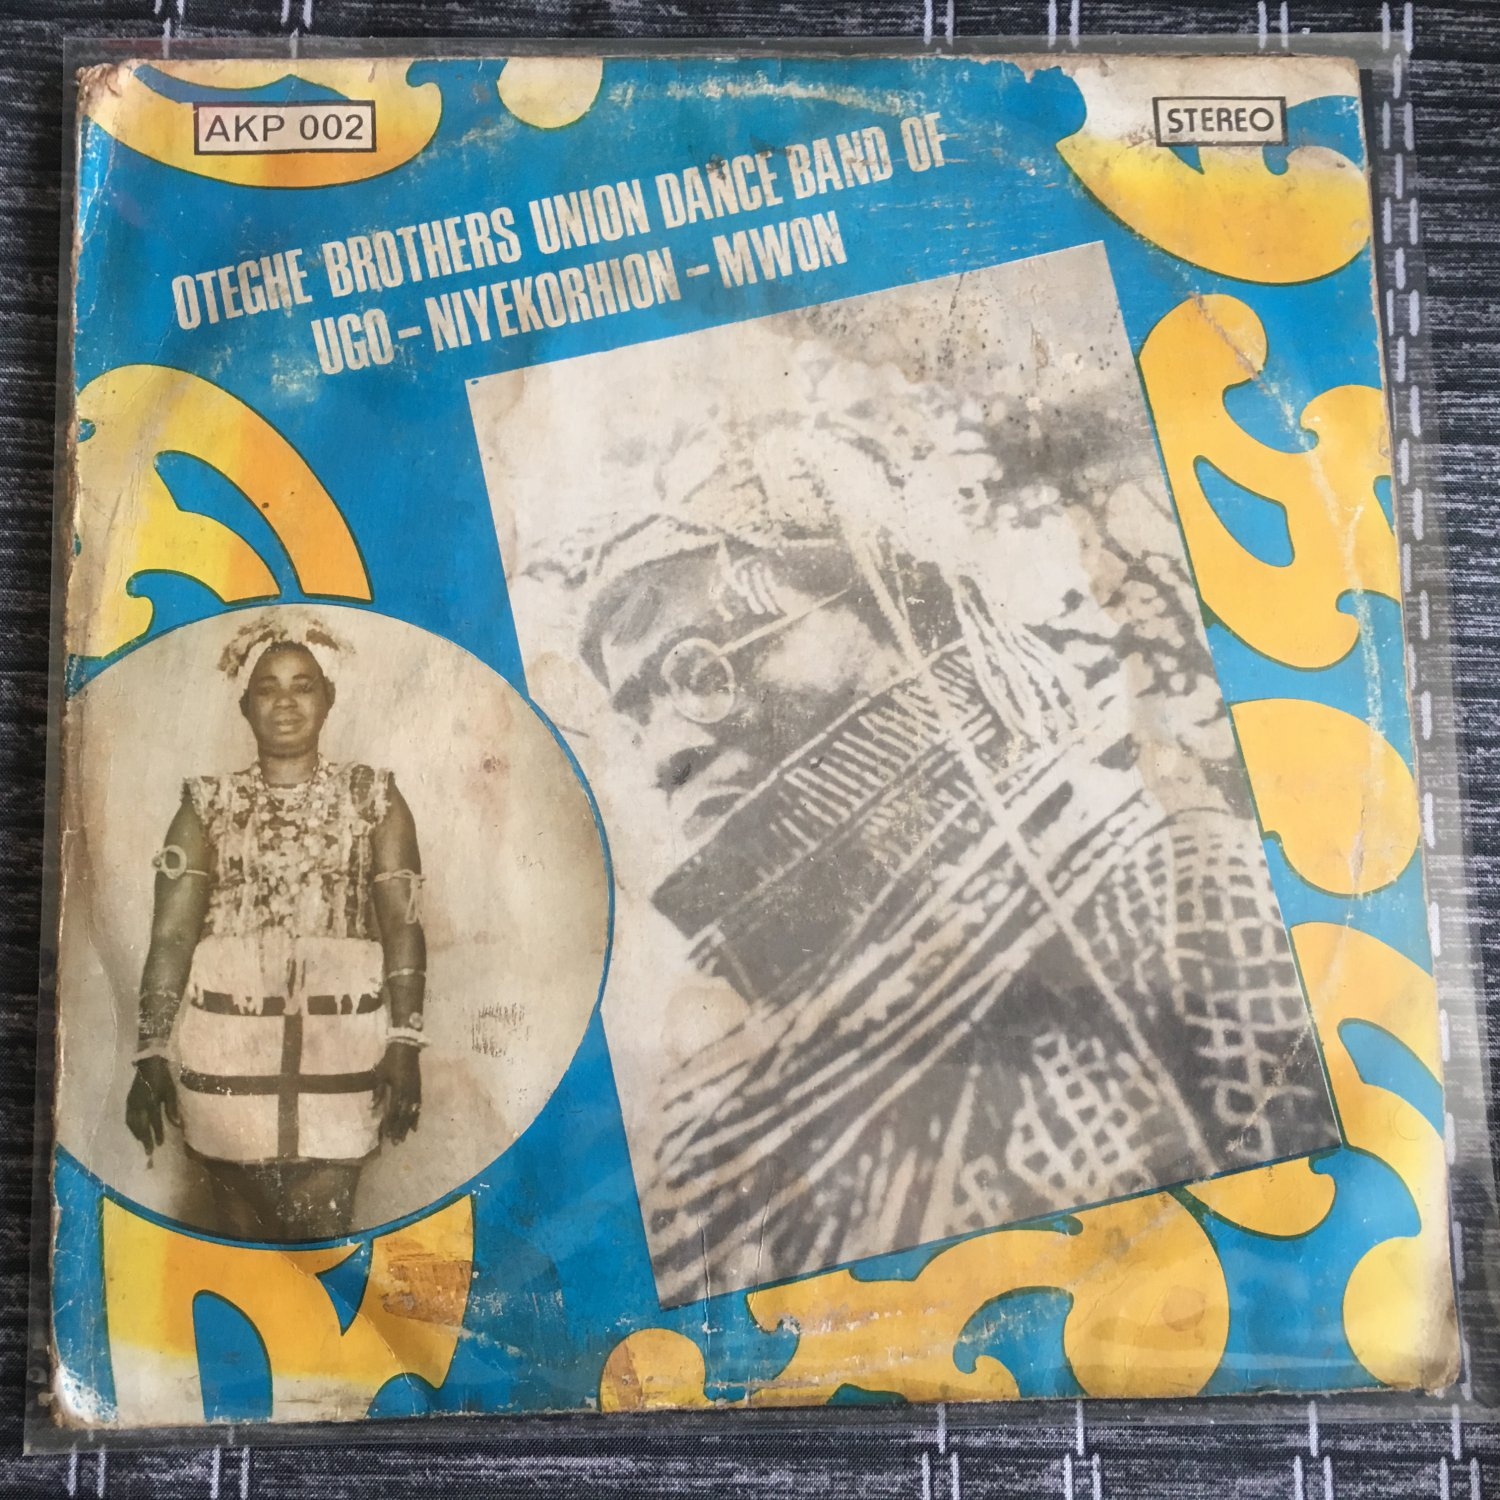 OTEGHE BROTHERS UNION DANCE BAND LP same NIGERIA mp3 LISTEN